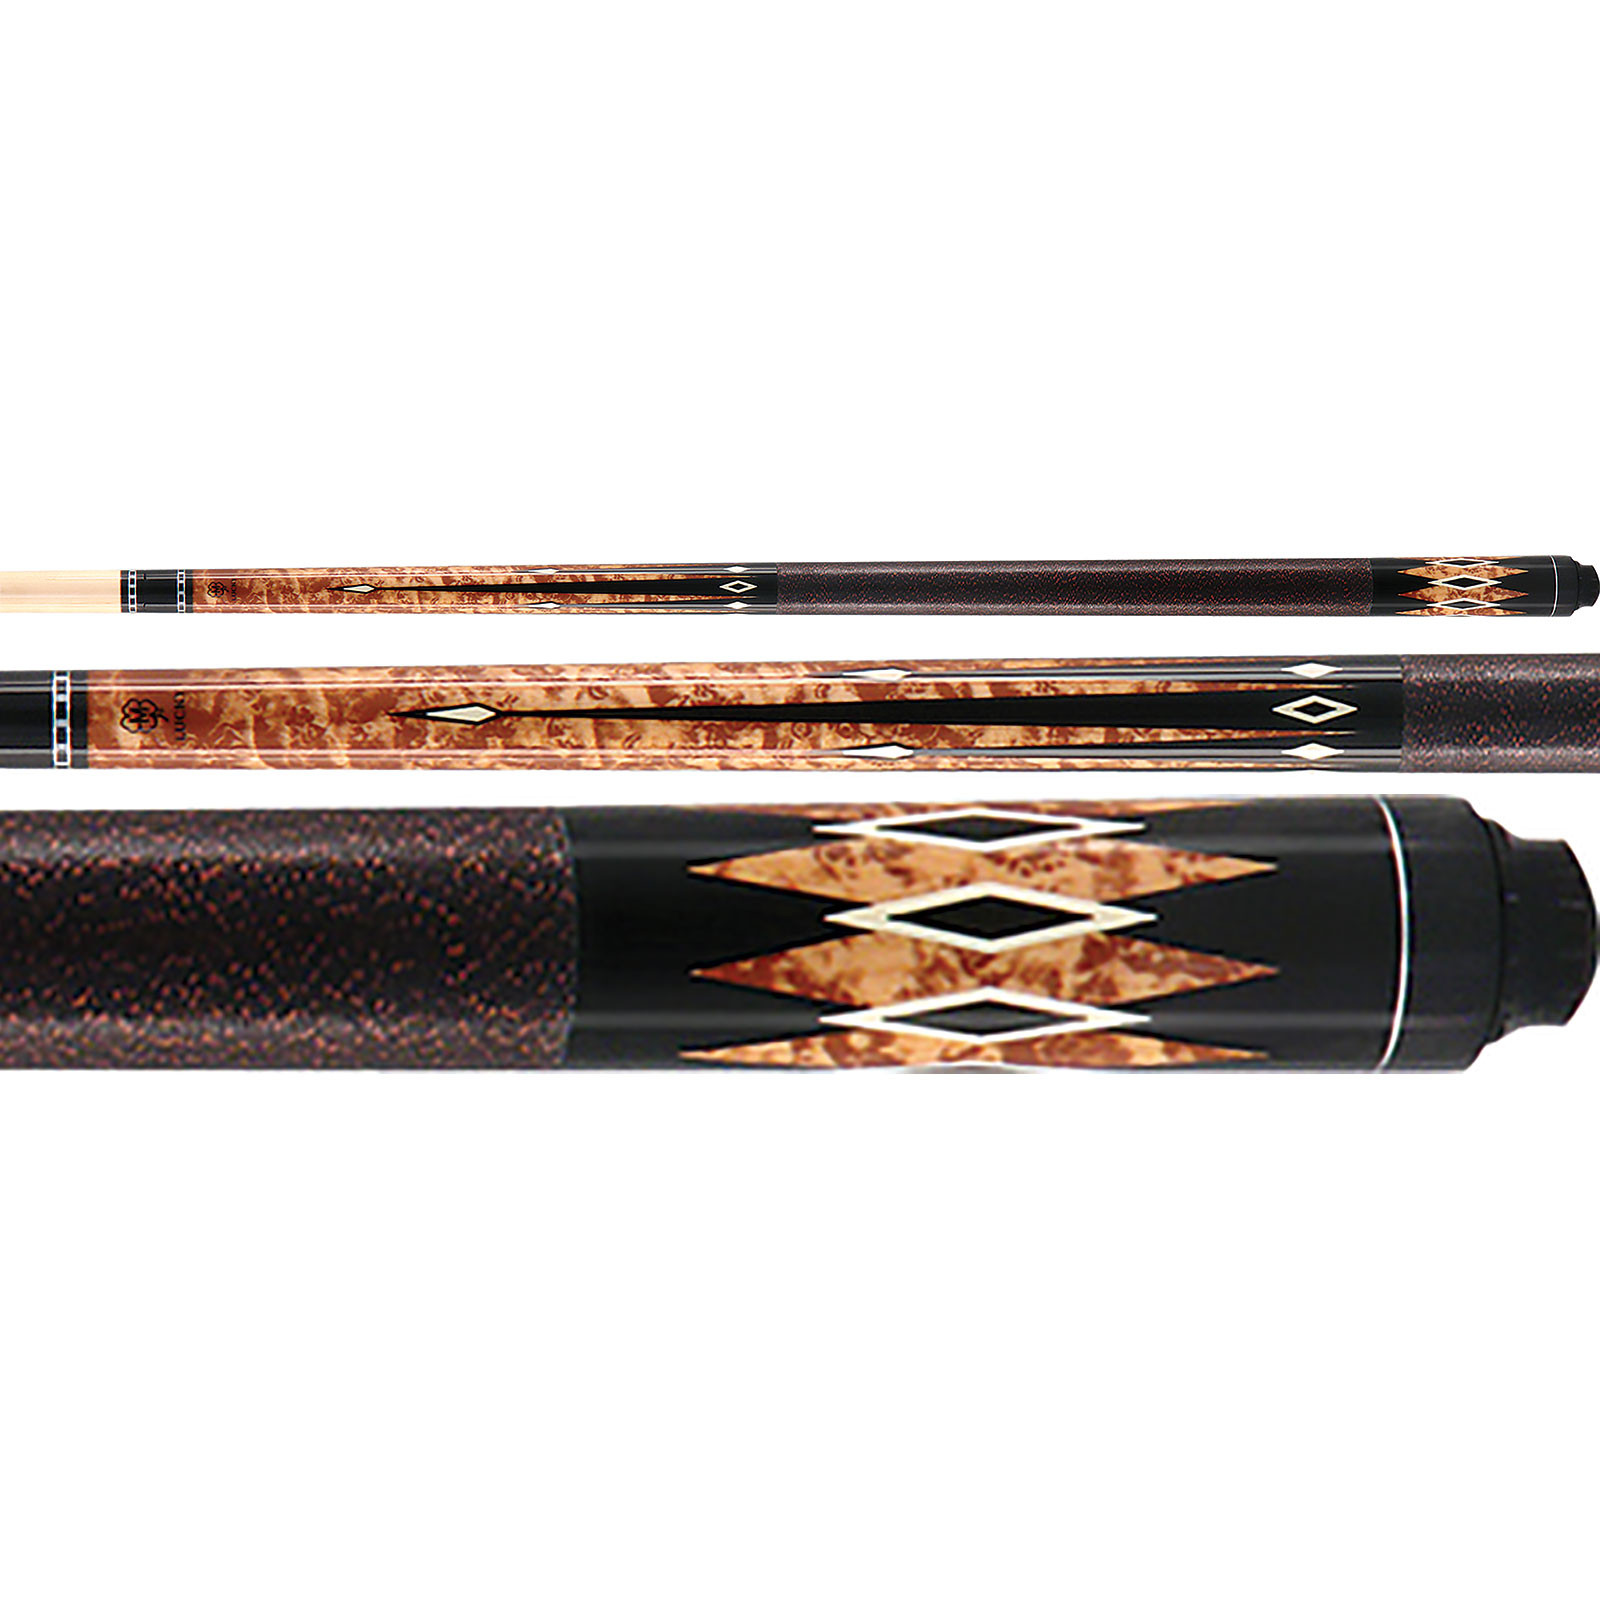 McDermott Lucky Pool Cue, L33, Brown